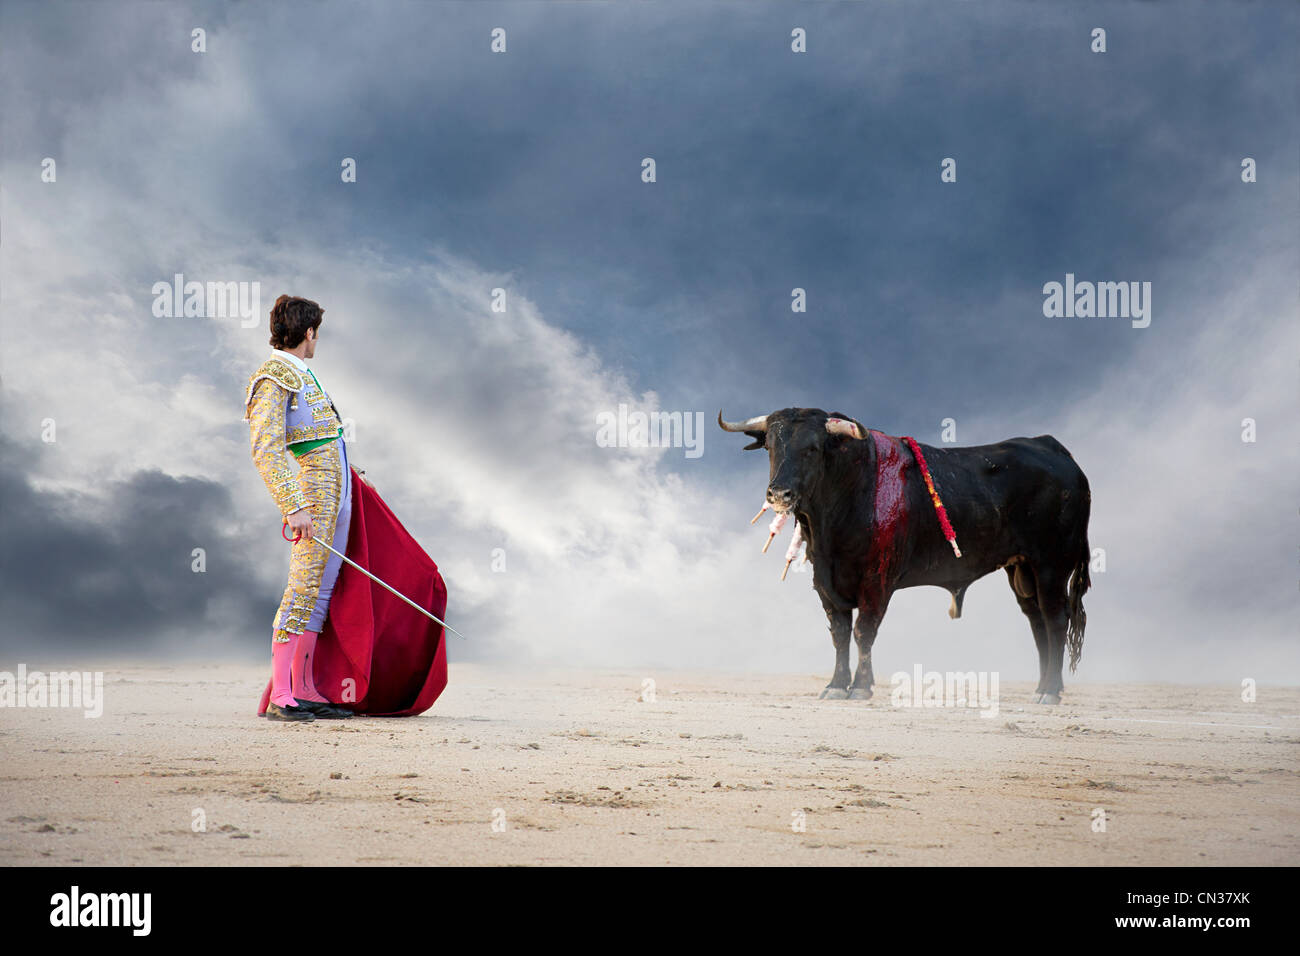 Bullfighter holding red cape with bull, Las Ventas bullring, Madrid - Stock Image